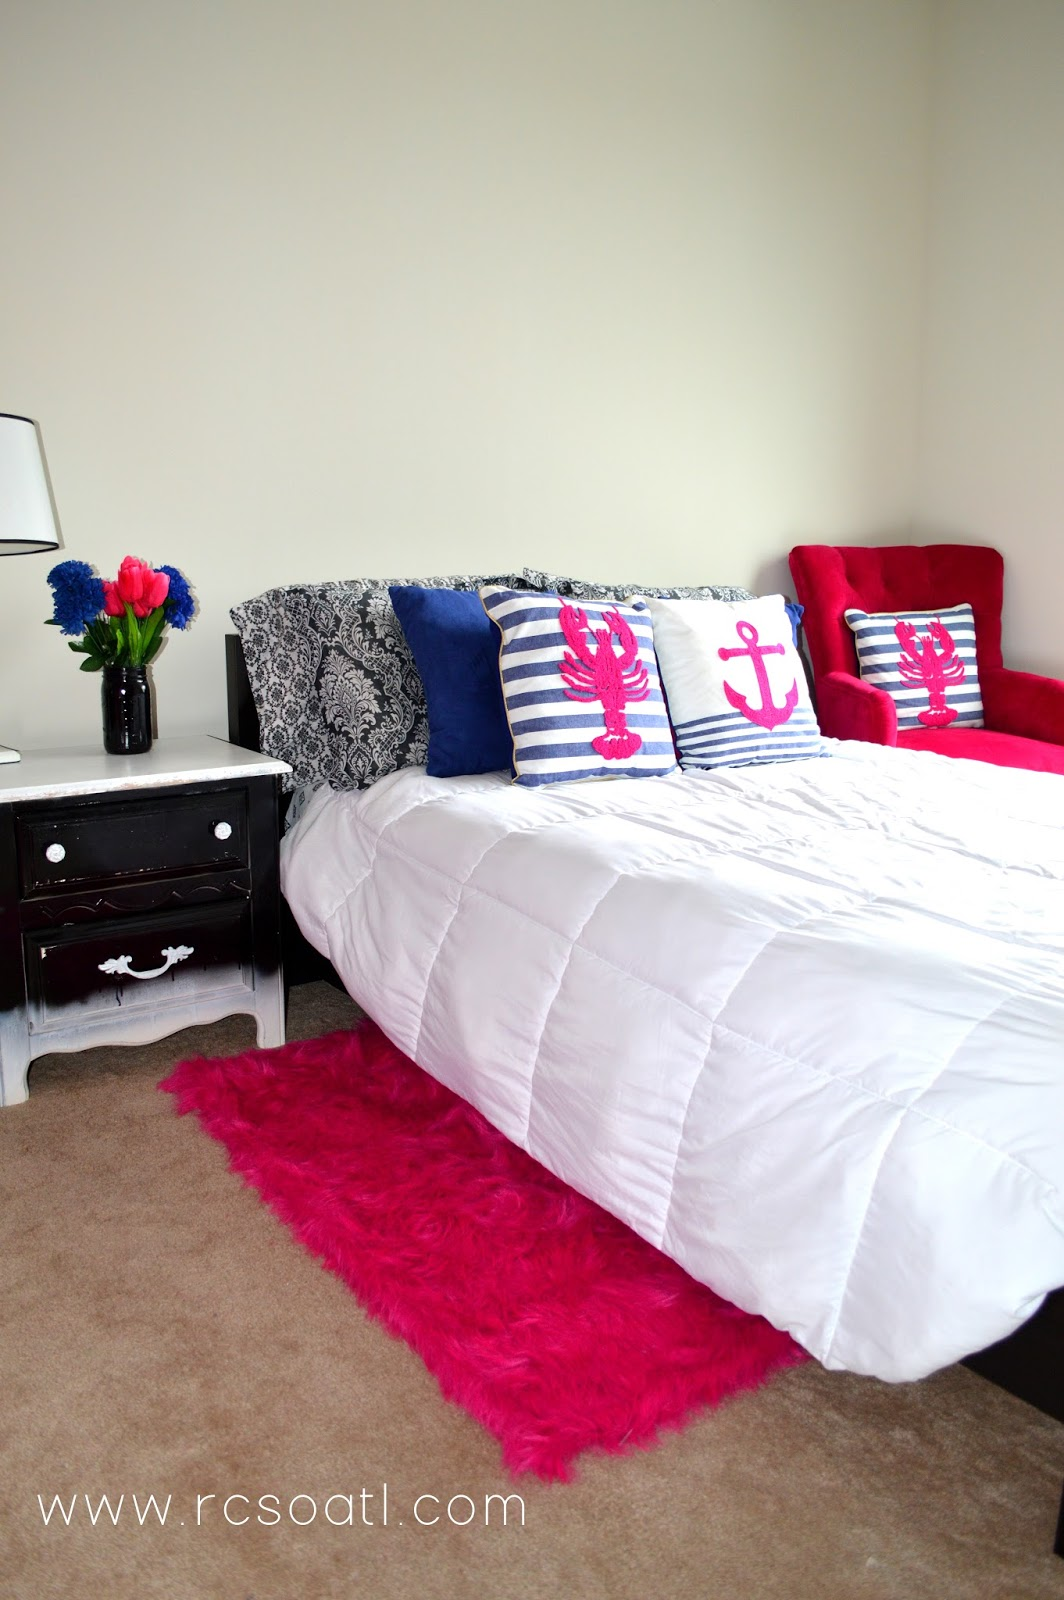 Hot Pink Bedroom: Real College Student Of Atlanta: My New Room! {Hot Pink